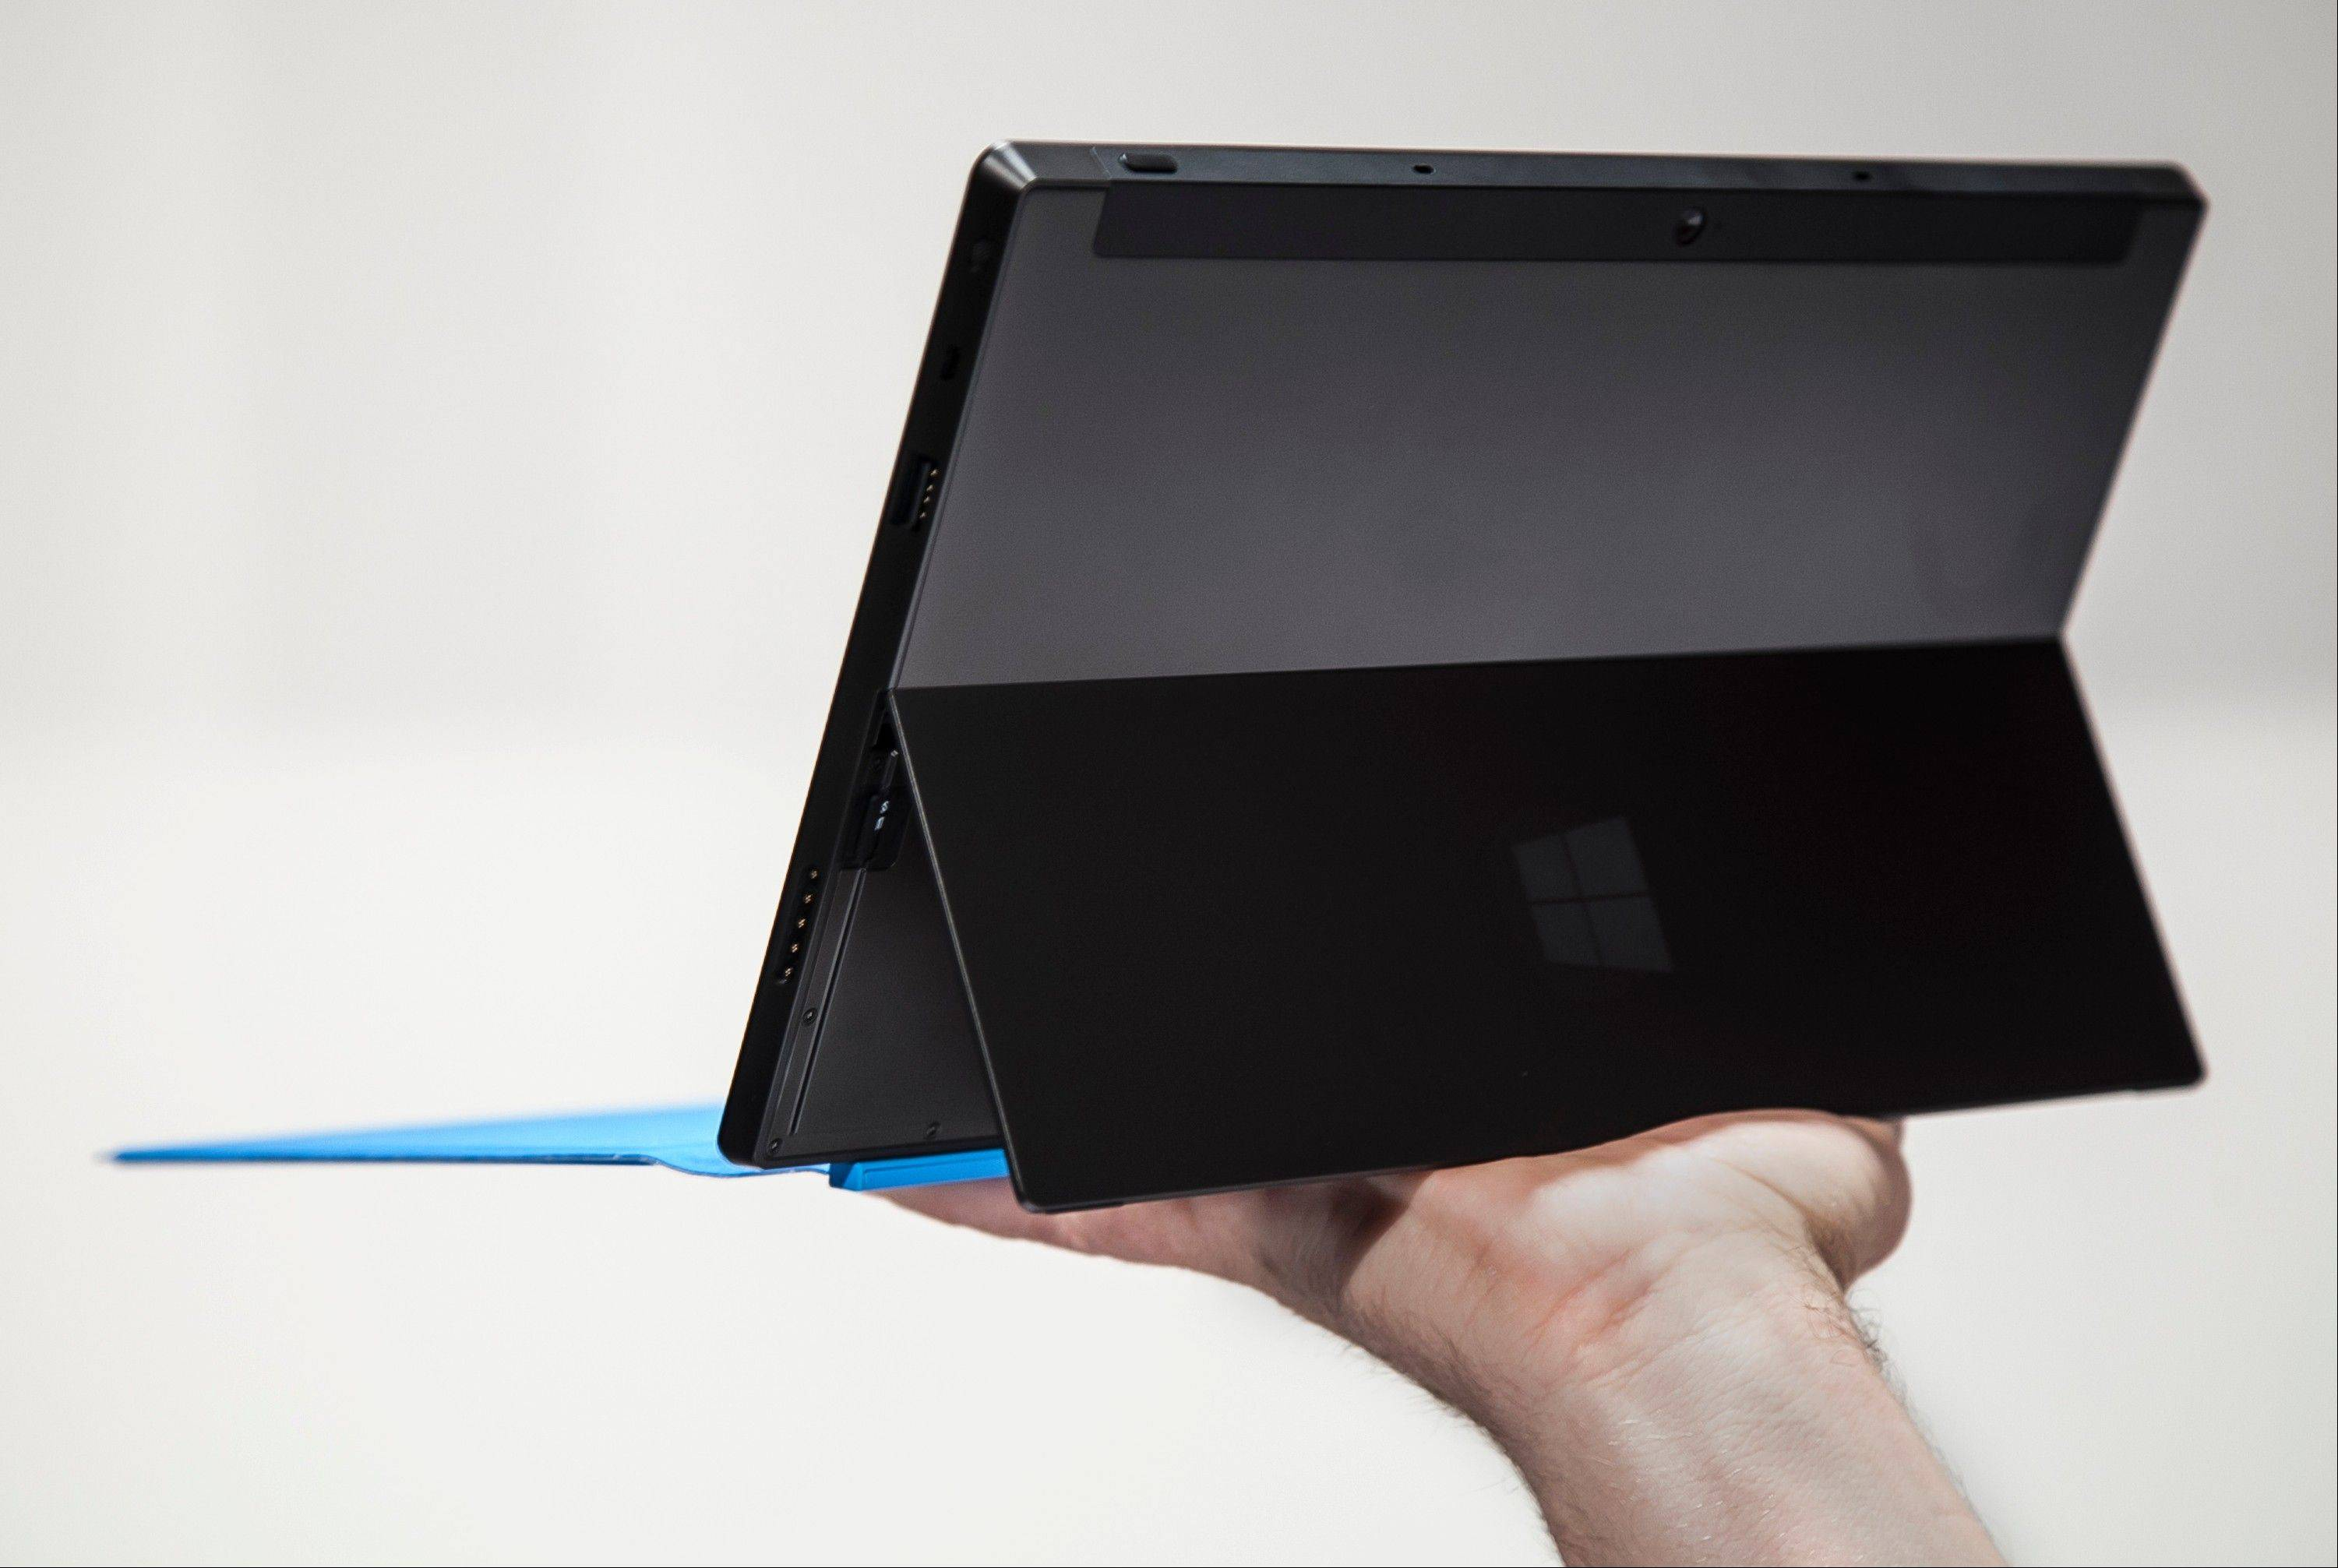 Microsoft Corp.'s new Surface tablet computer is displayed at Hollywood's Milk Studios in Los Angeles on June 18. Microsoft's first tablet computer, the Surface, will start at $499 when it goes on sale Oct. 26.